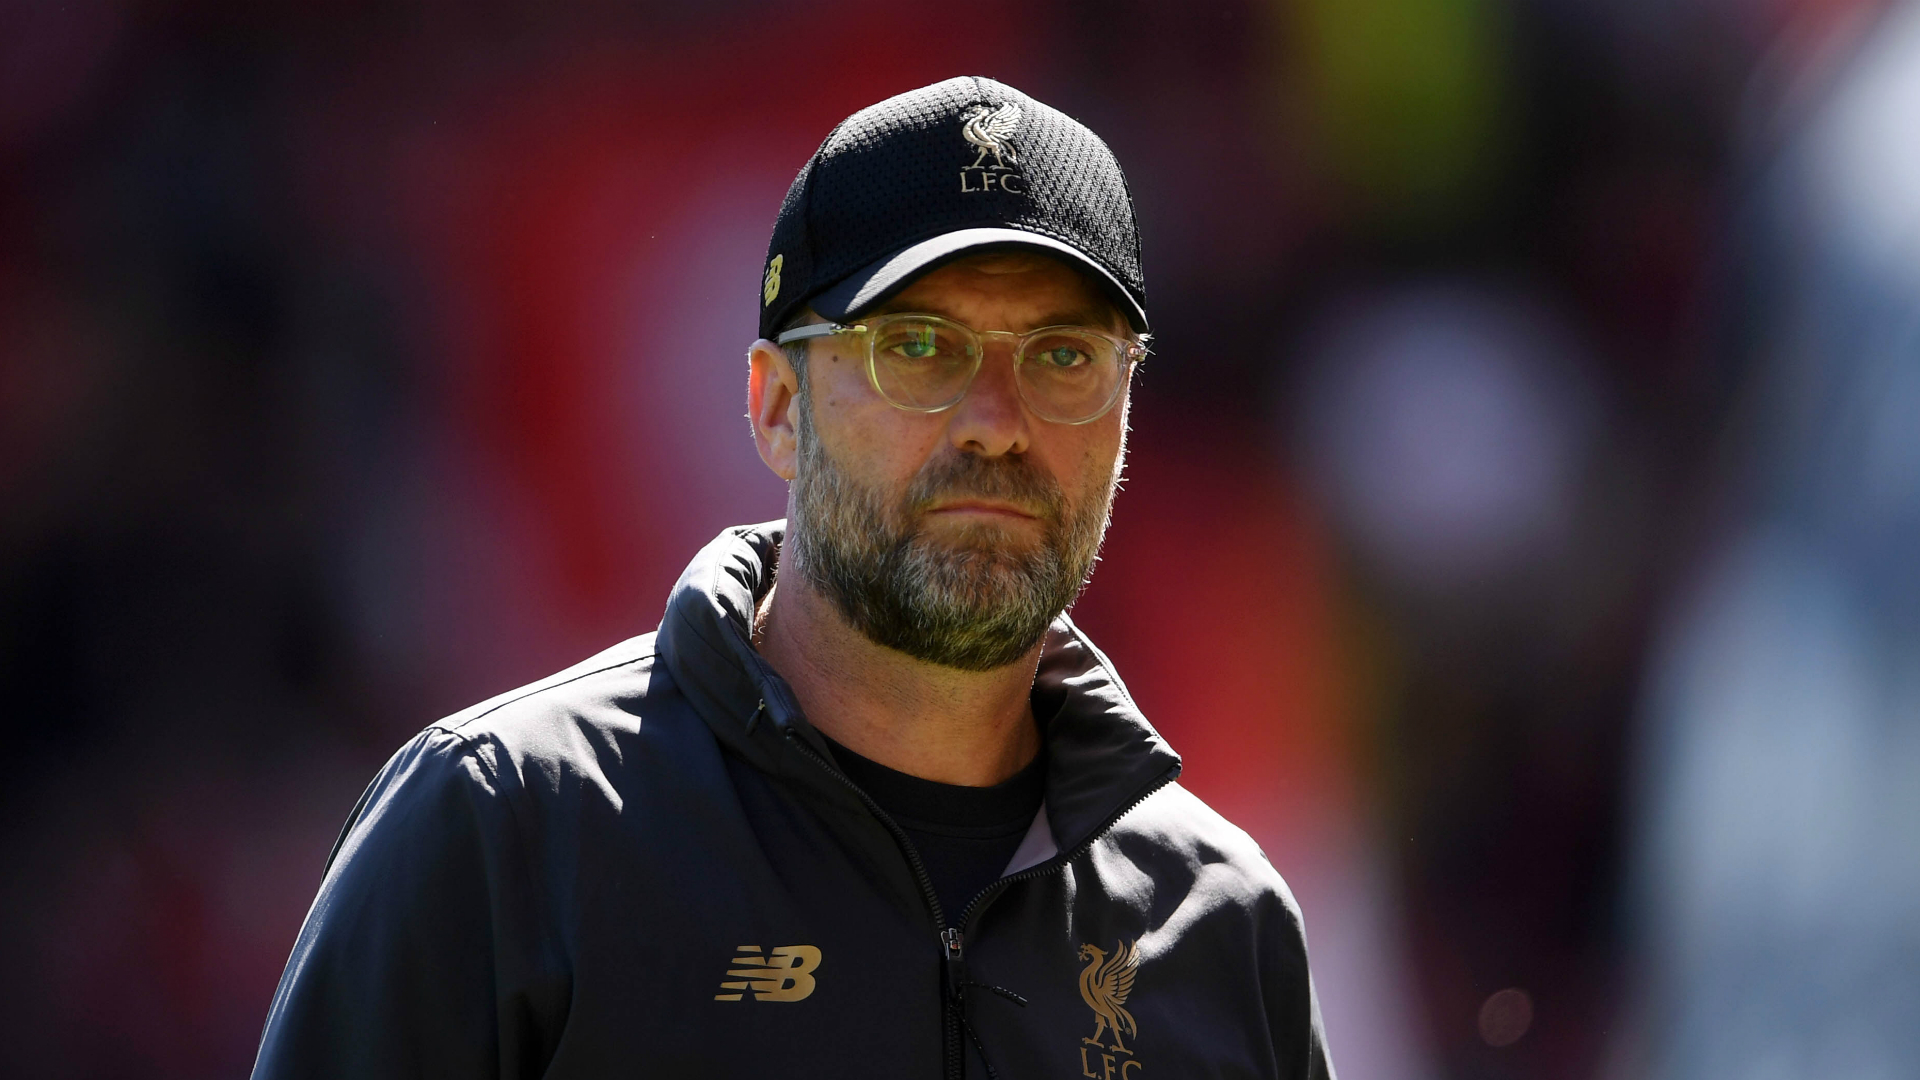 Liverpool manager Jurgen Klopp still expects a quiet transfer window for the European champions.